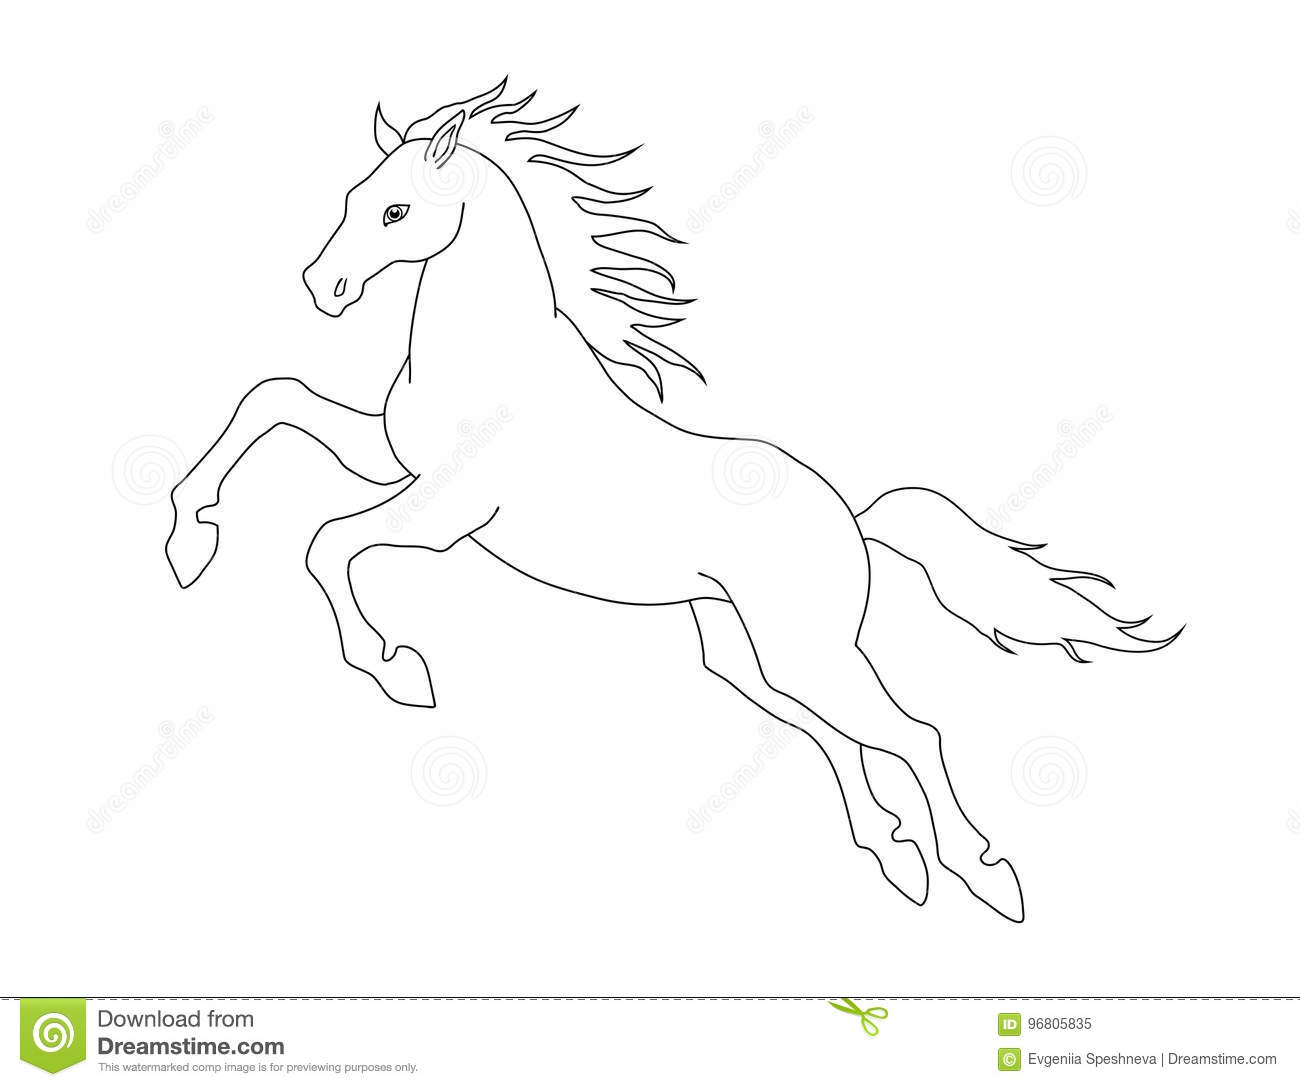 Royalty Free Vector Download Line Illustration Of Jumping Horse For Coloring Books